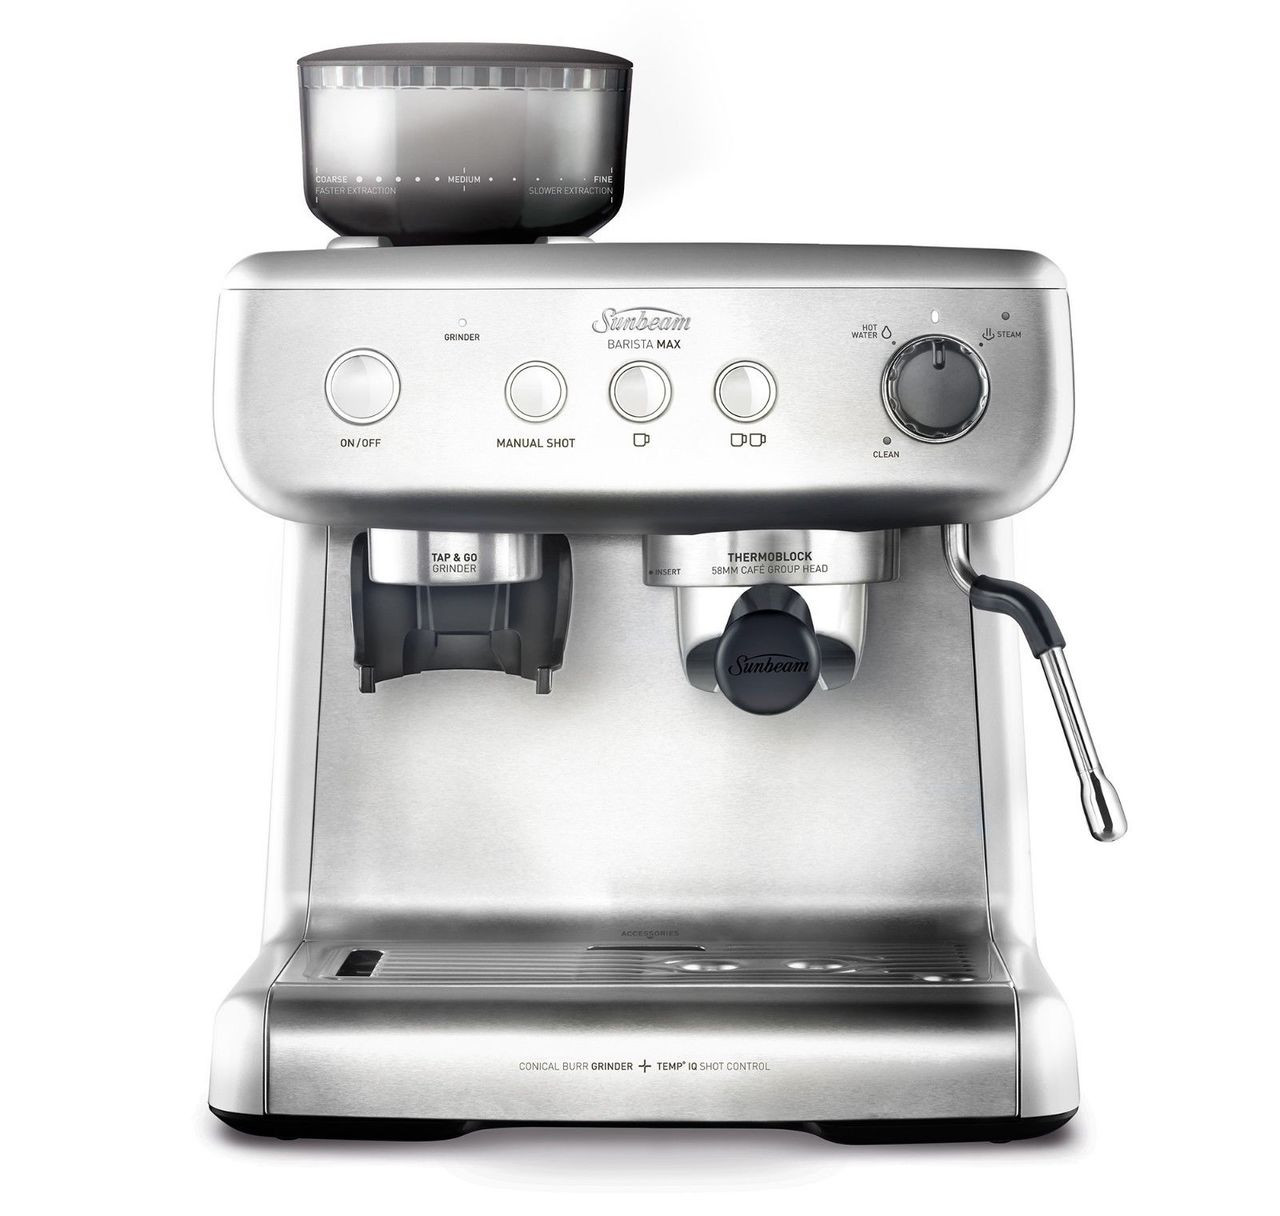 Sunbeam EM5300 Barista Max Espresso Machine 58mm Size Group Head